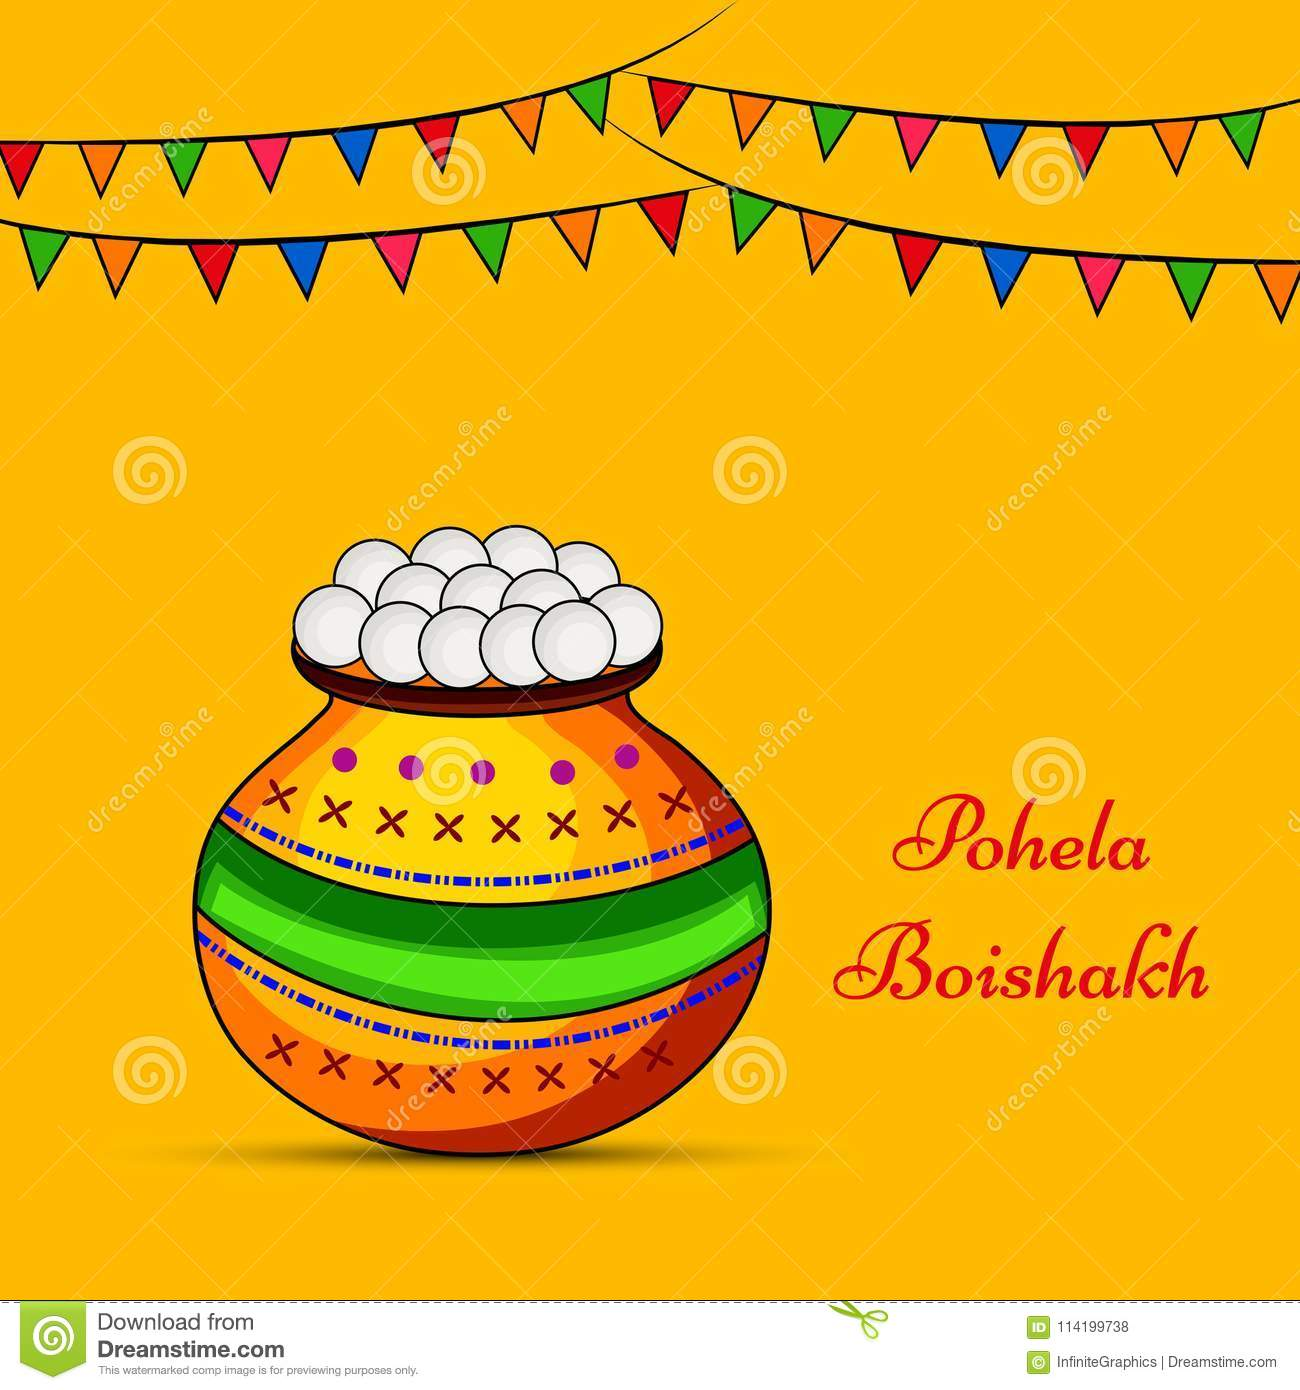 illustration of elements of indian bengali new year background pohela boishakh meaning is happy new year in bengali language